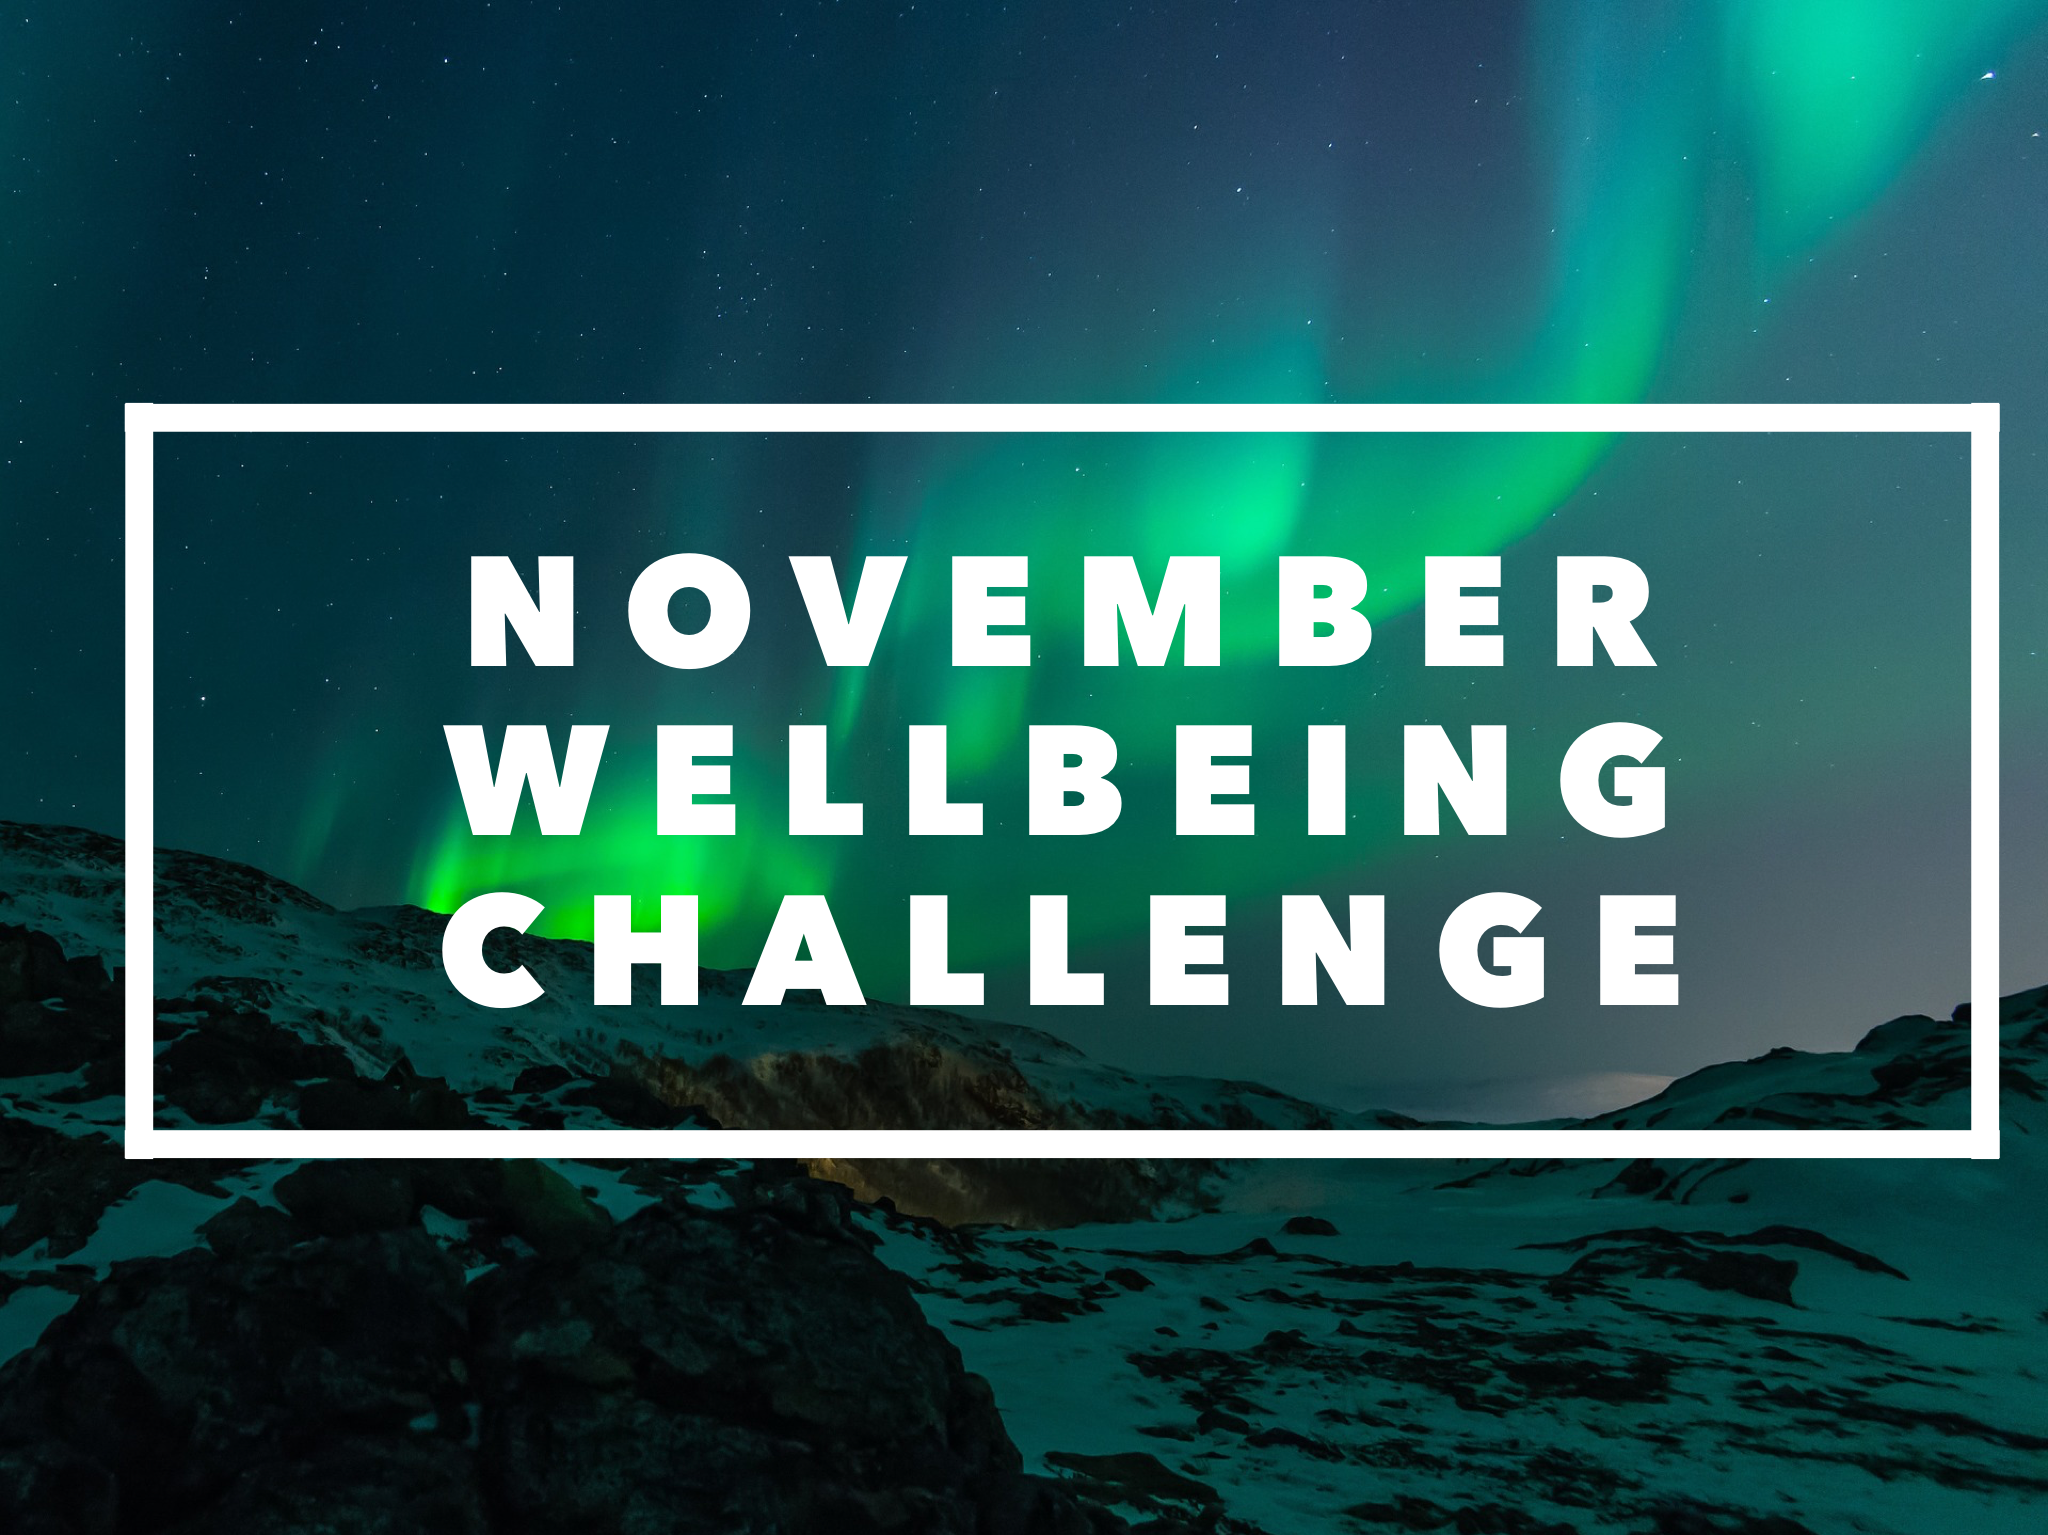 November Wellbeing Challenge